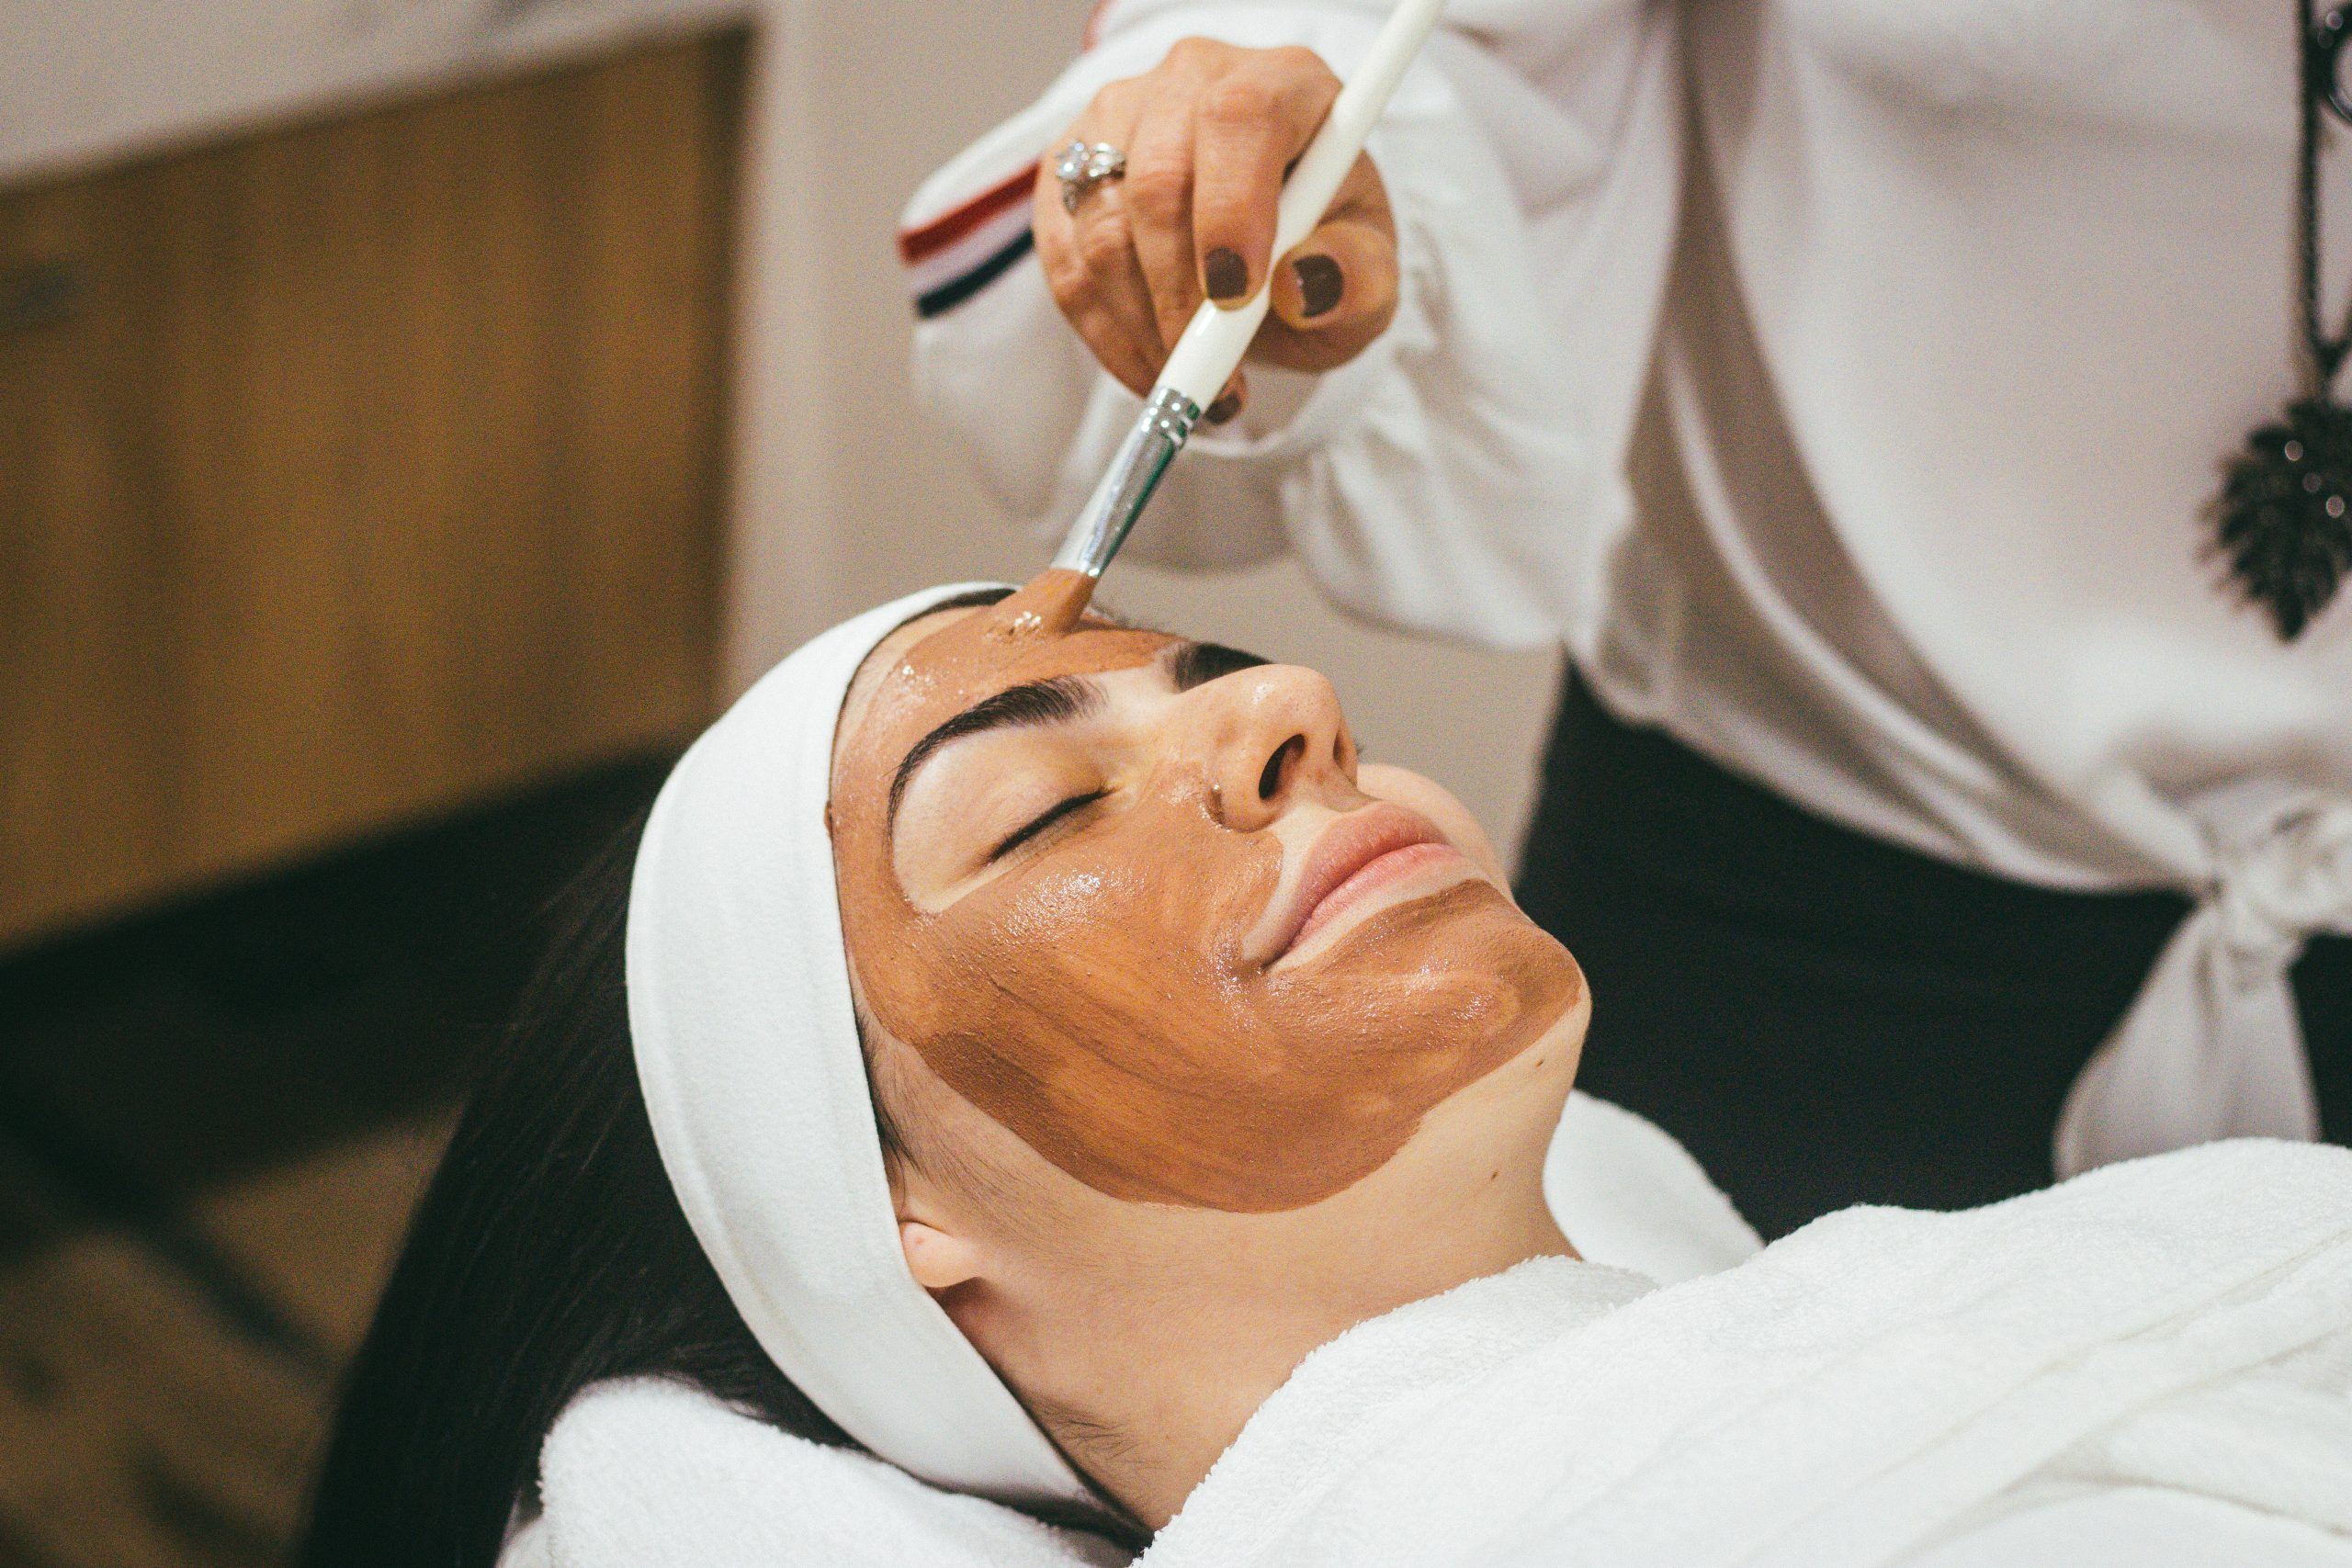 woman lying down, eyes closed, mid facial treatment for glowing skin